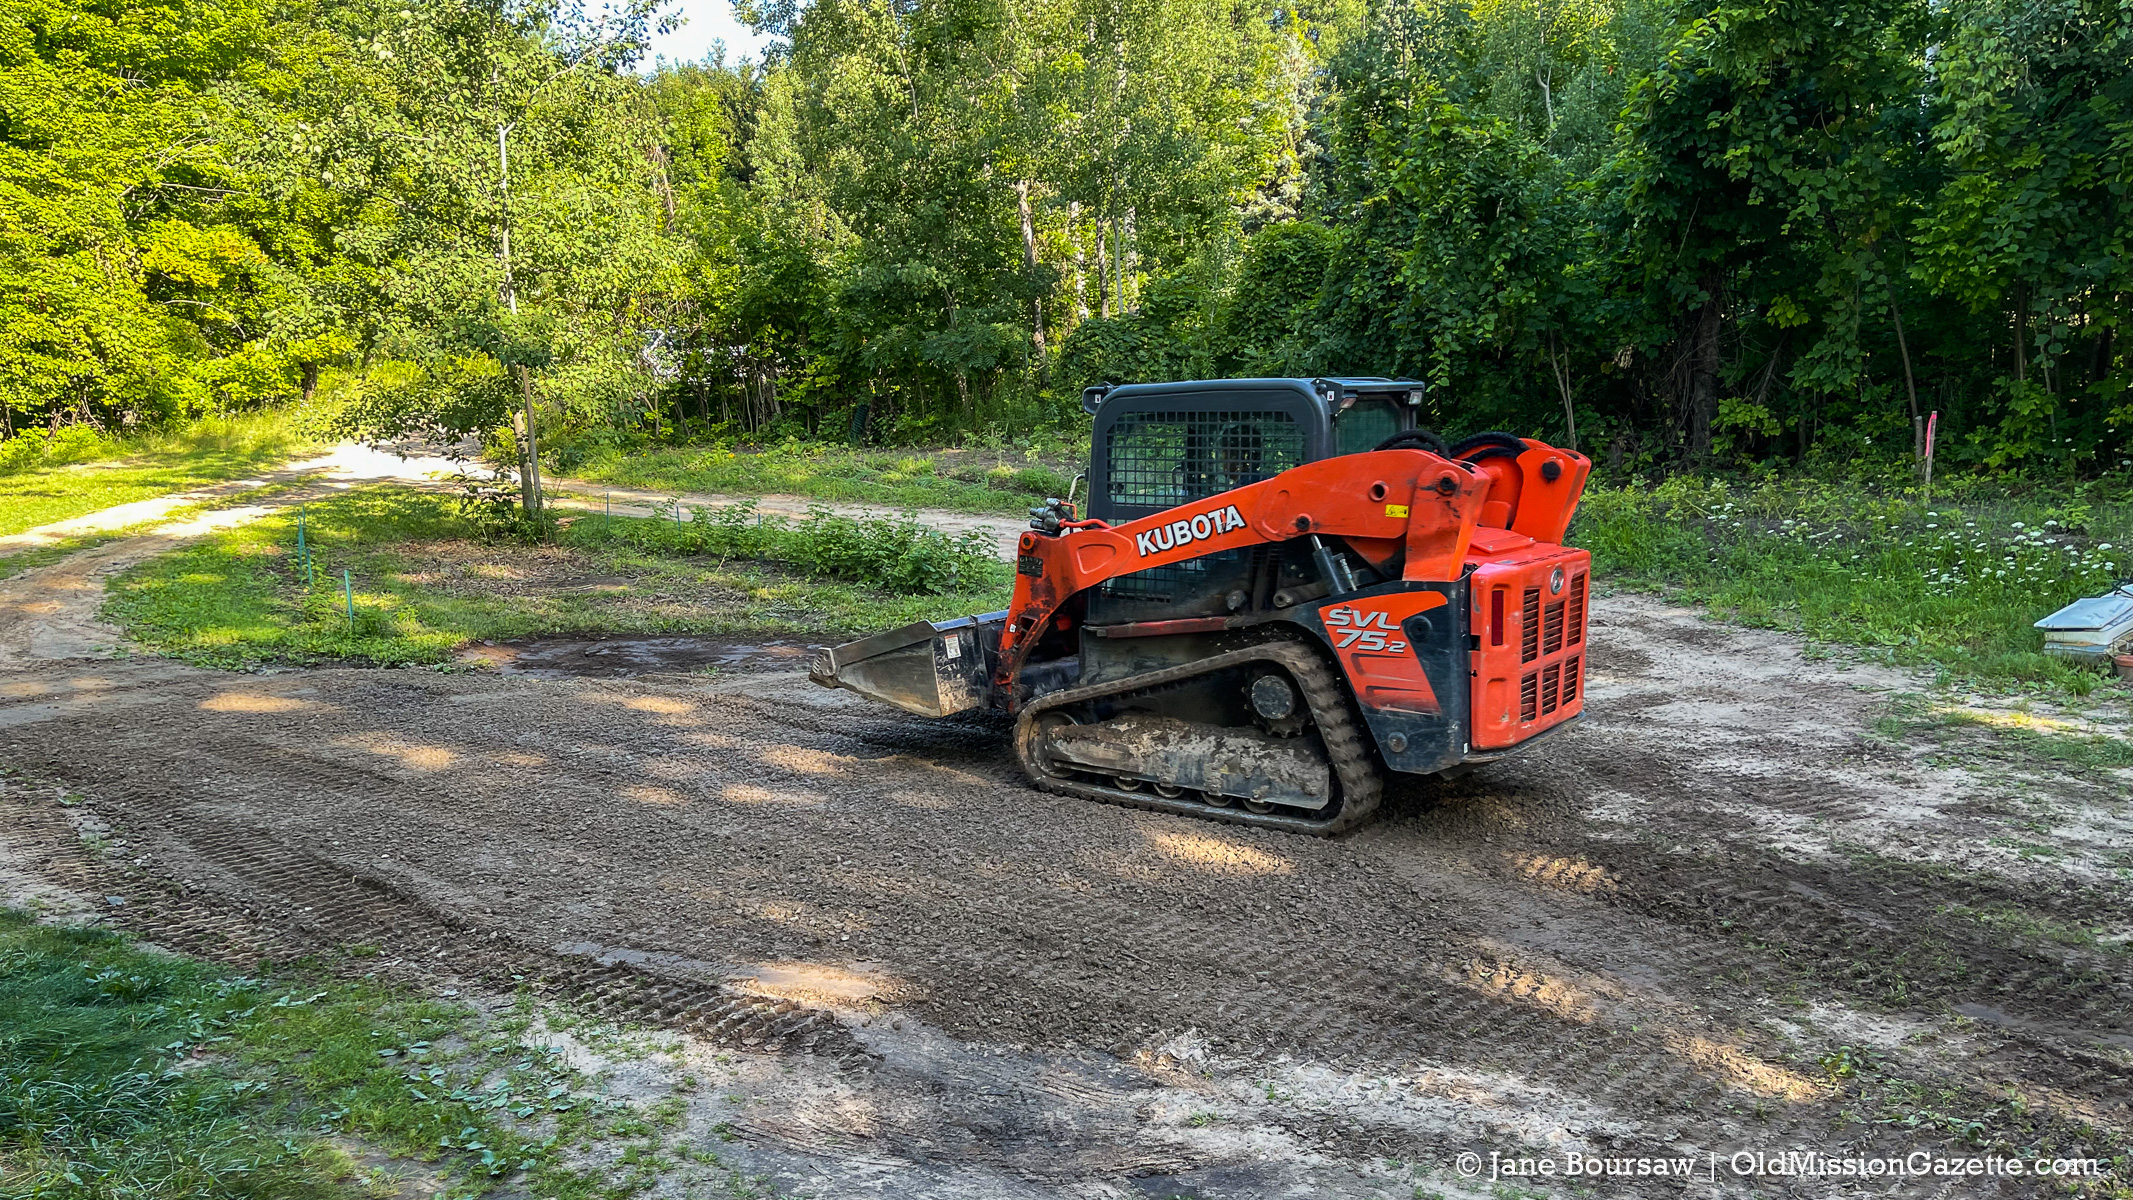 Jane's World - Nate McManus, owner of Oliver and Co., fixing Lake Boursaw in Tim and Jane's driveway | Jane Boursaw Photo